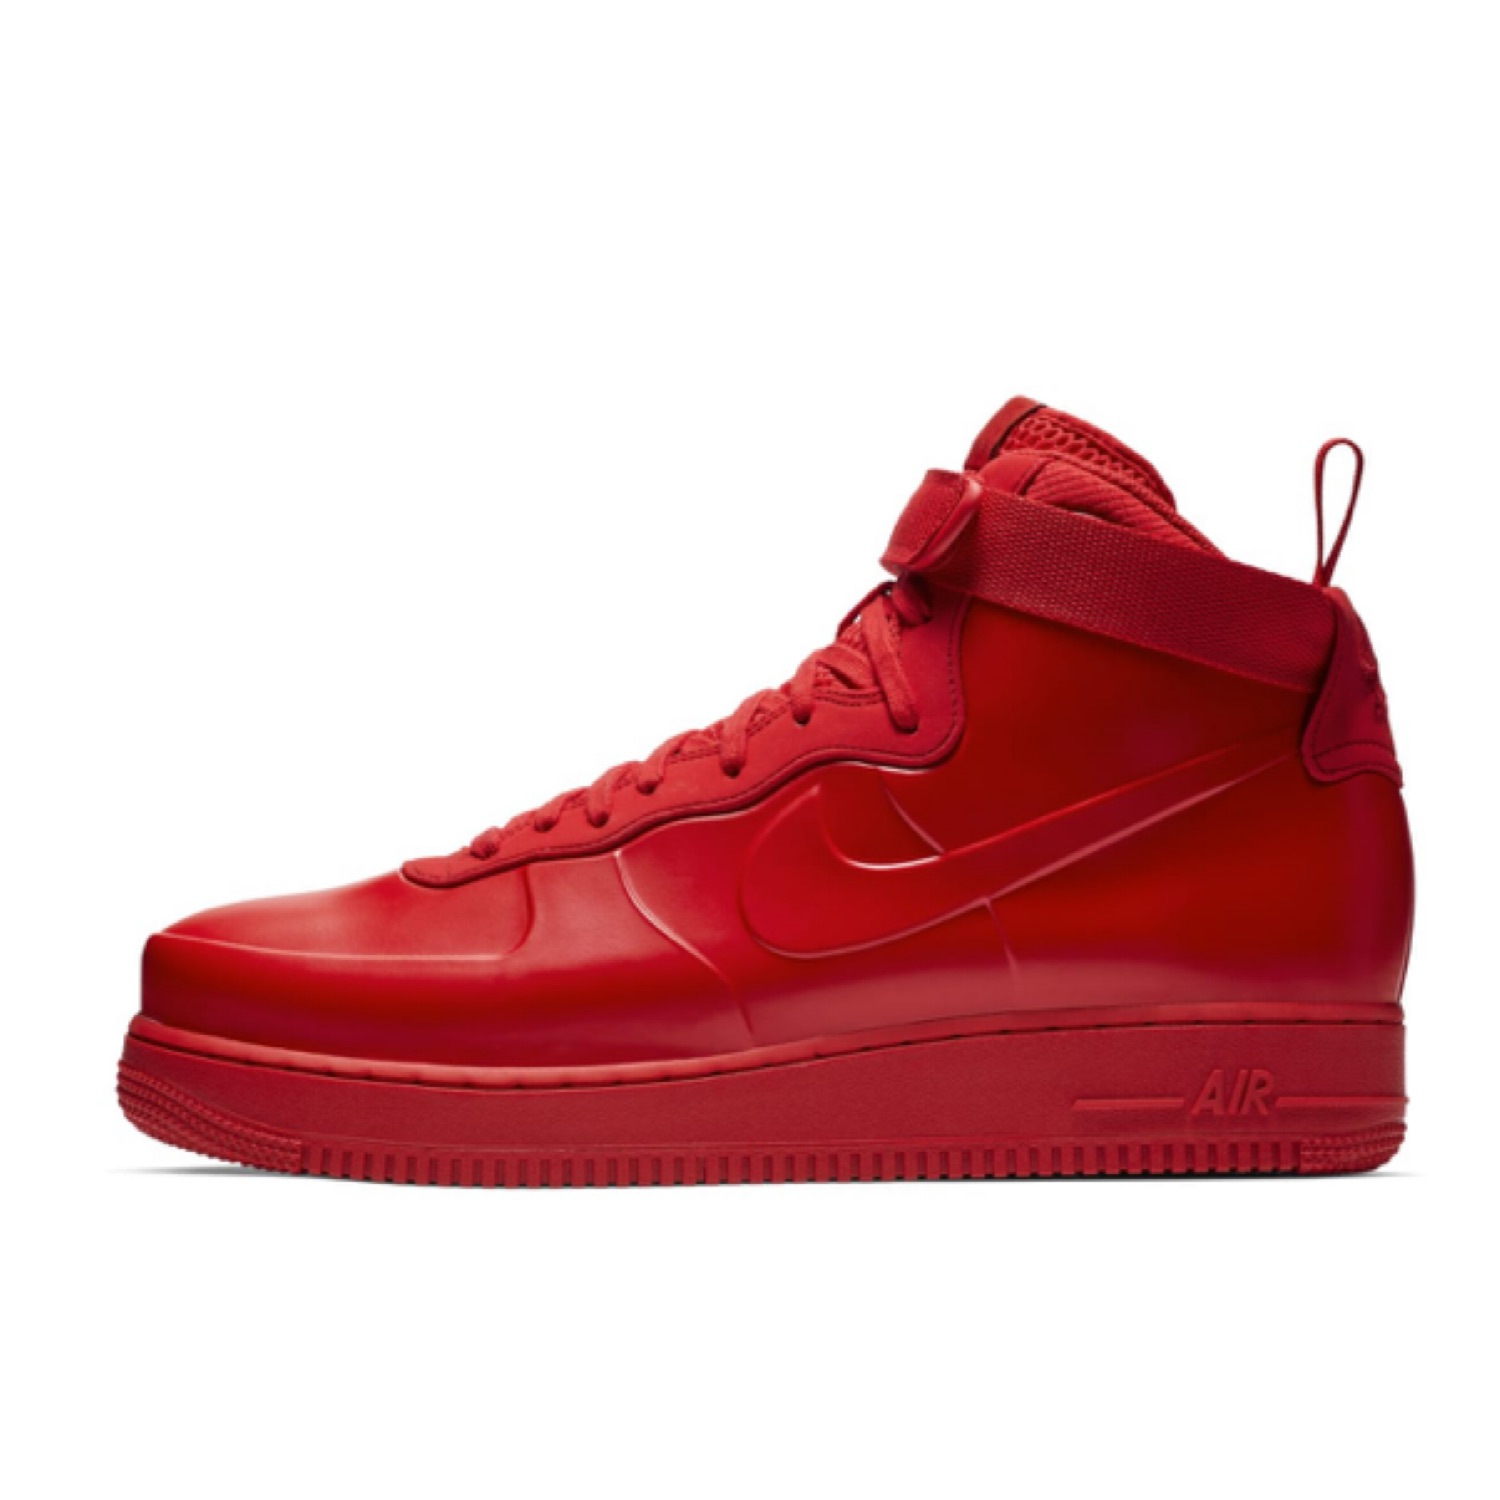 high top red air force ones - 56% OFF